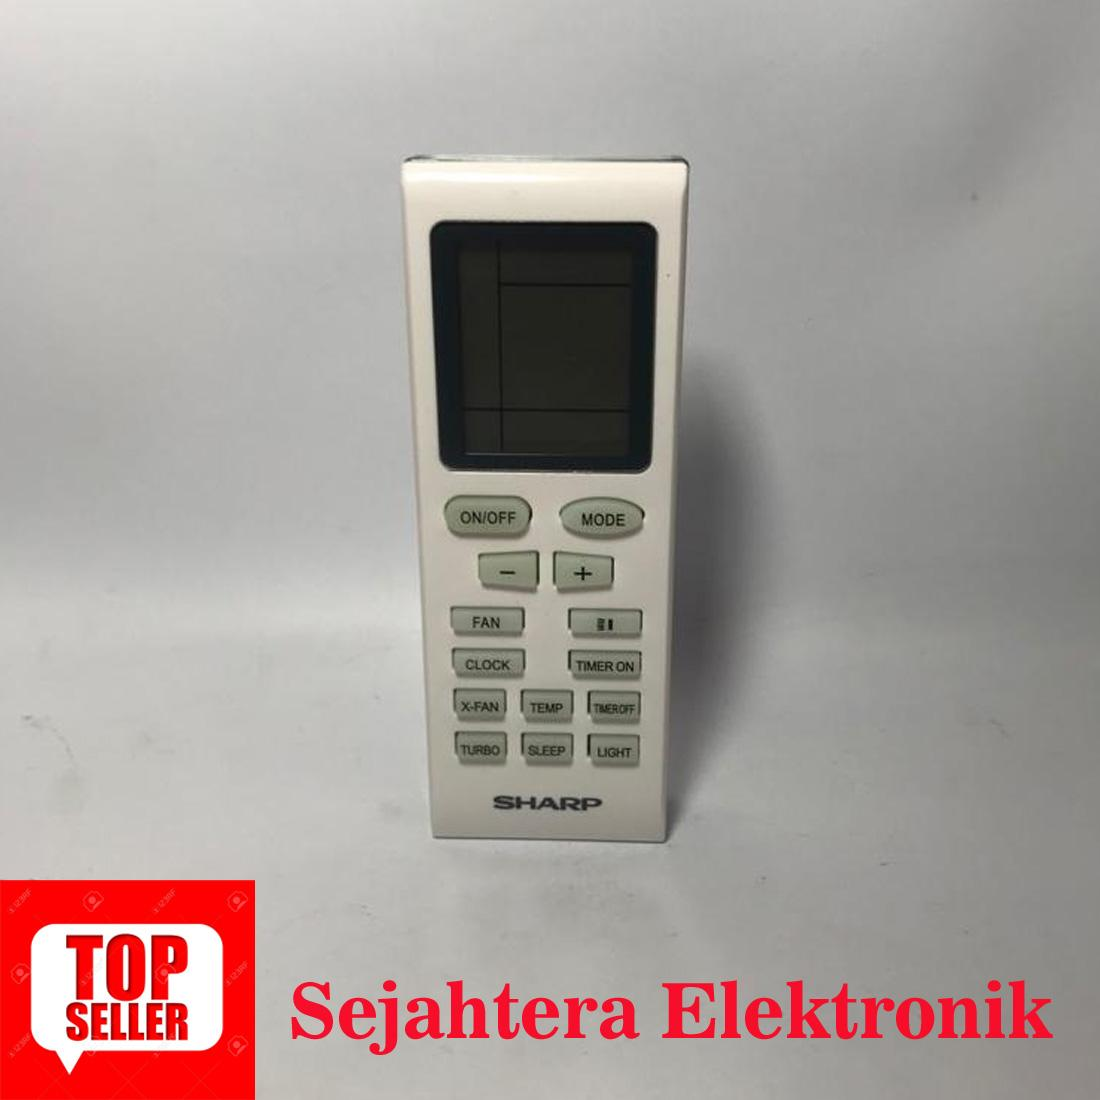 REMOT/REMOTE AC SHARP ORIGINAL Gratis Baterai